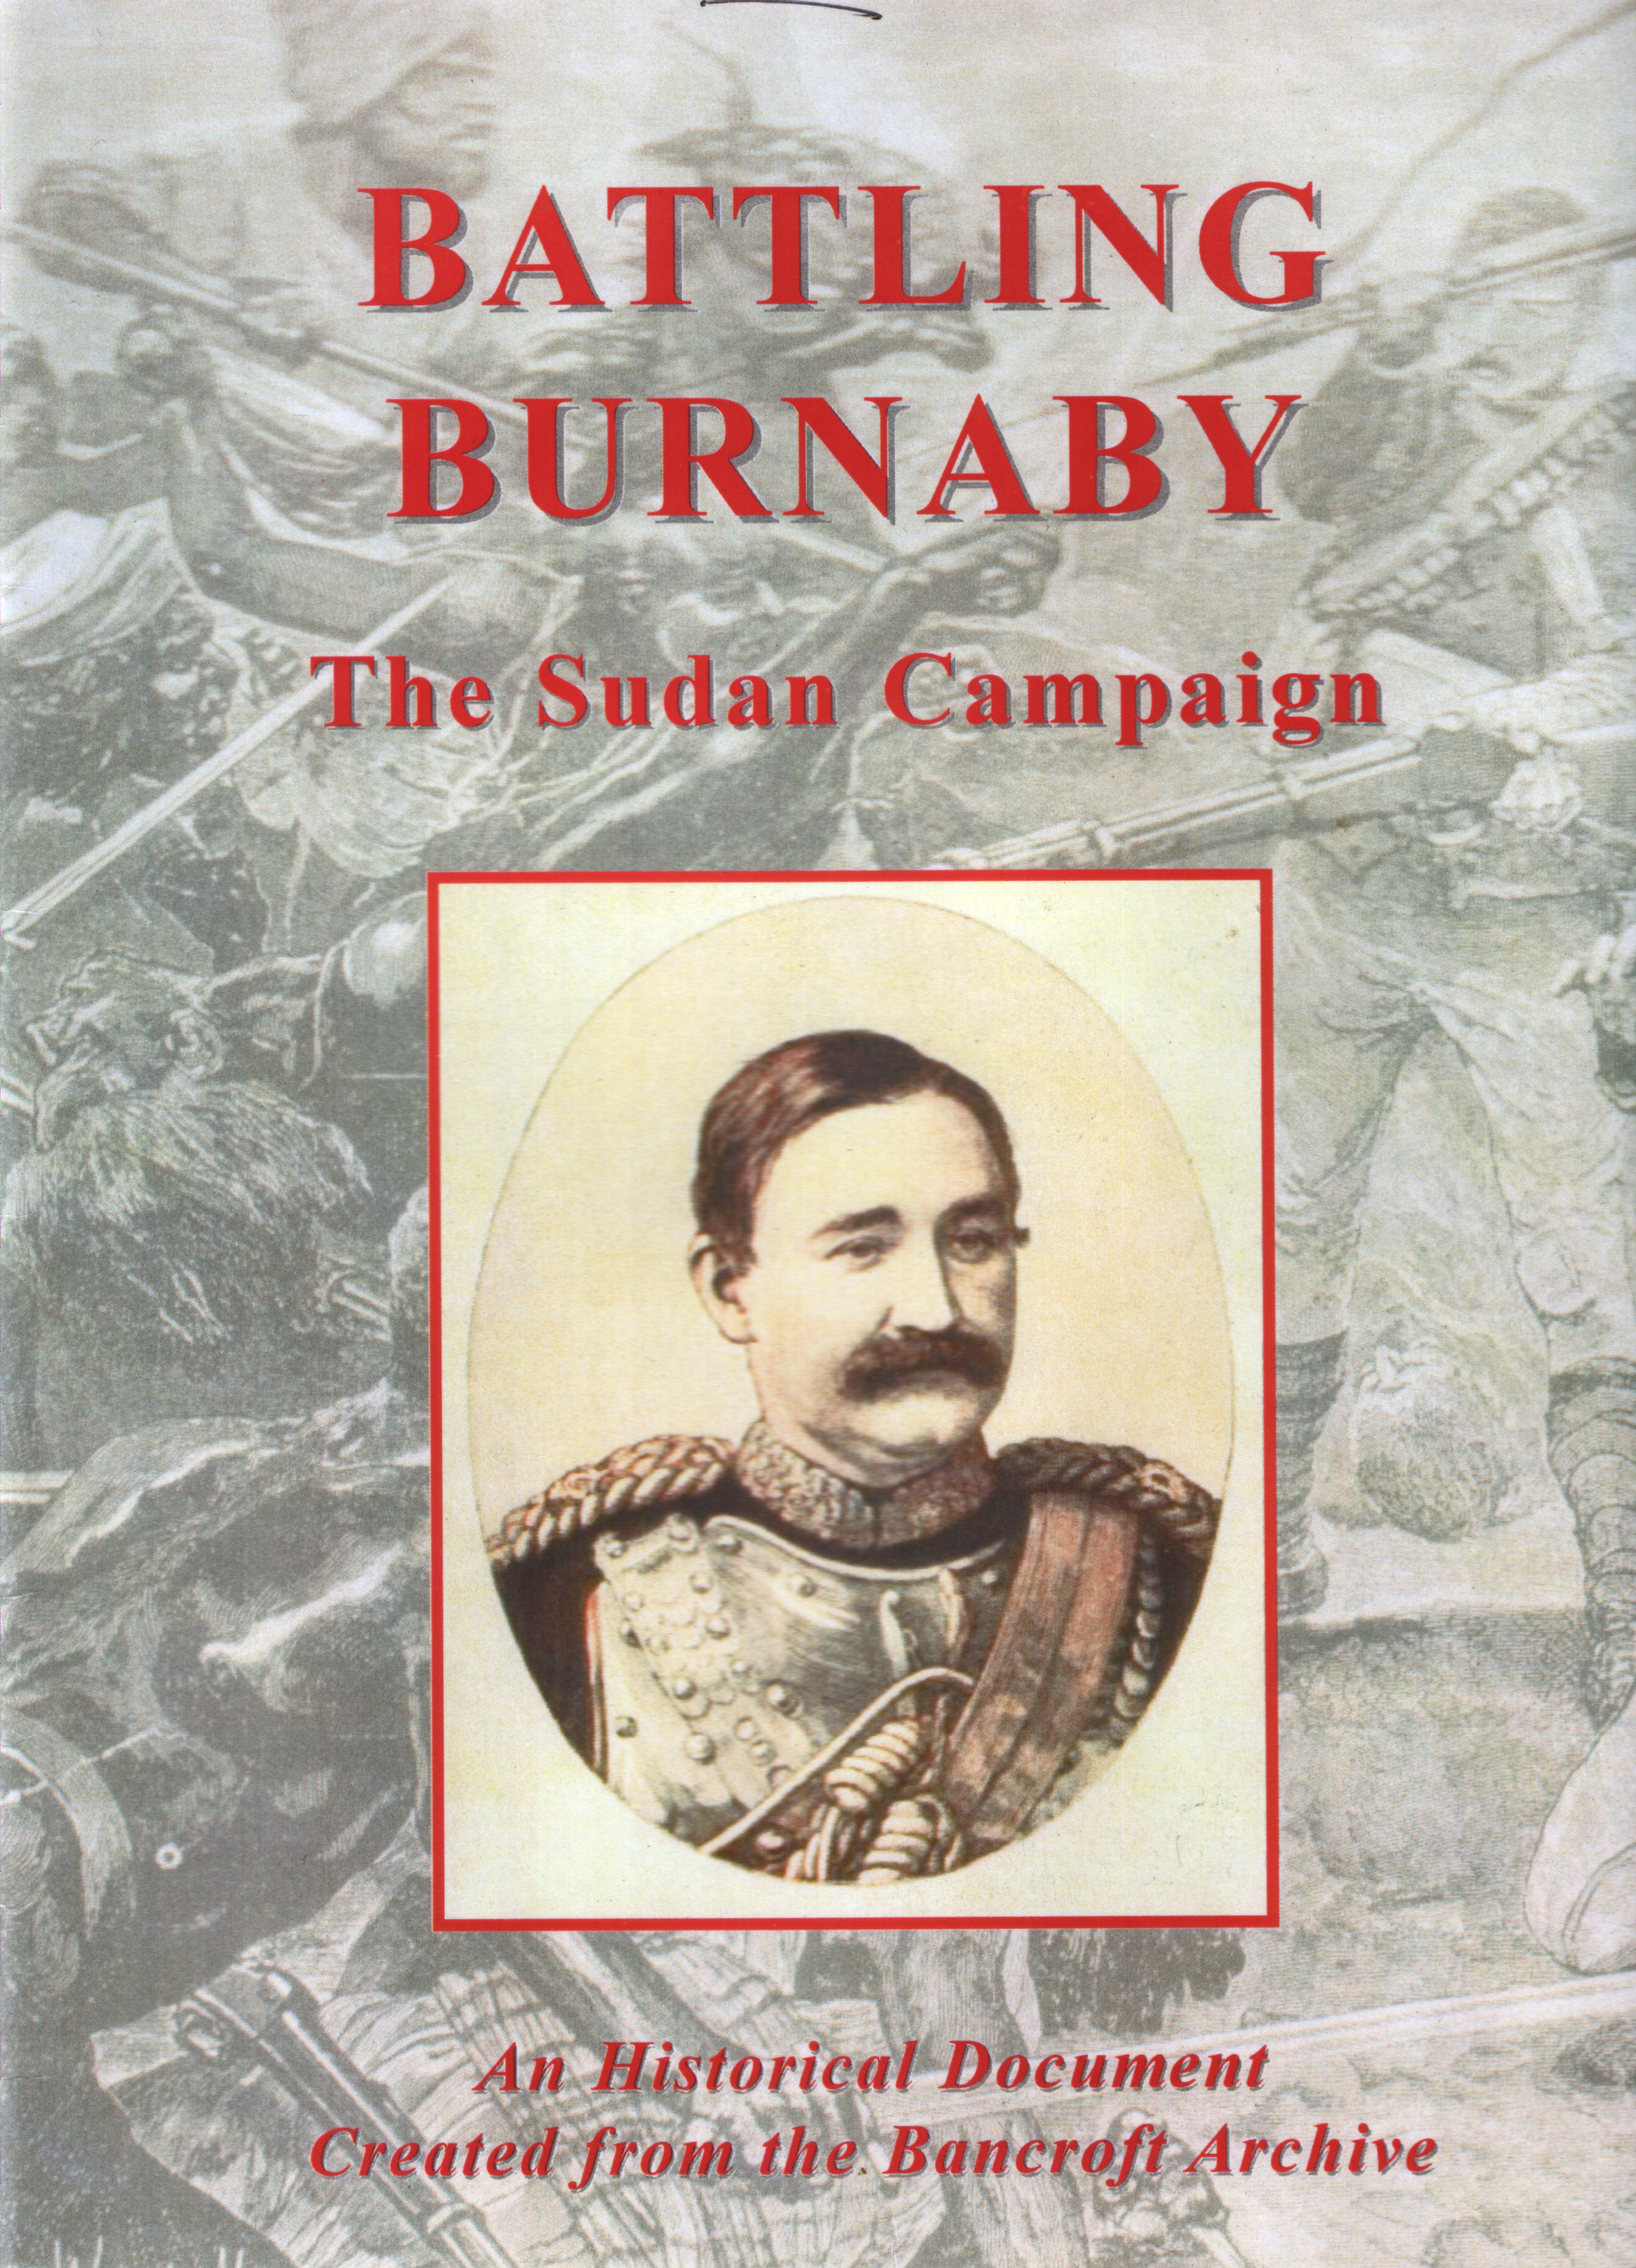 Battling Burnaby: The Sudan Campaign